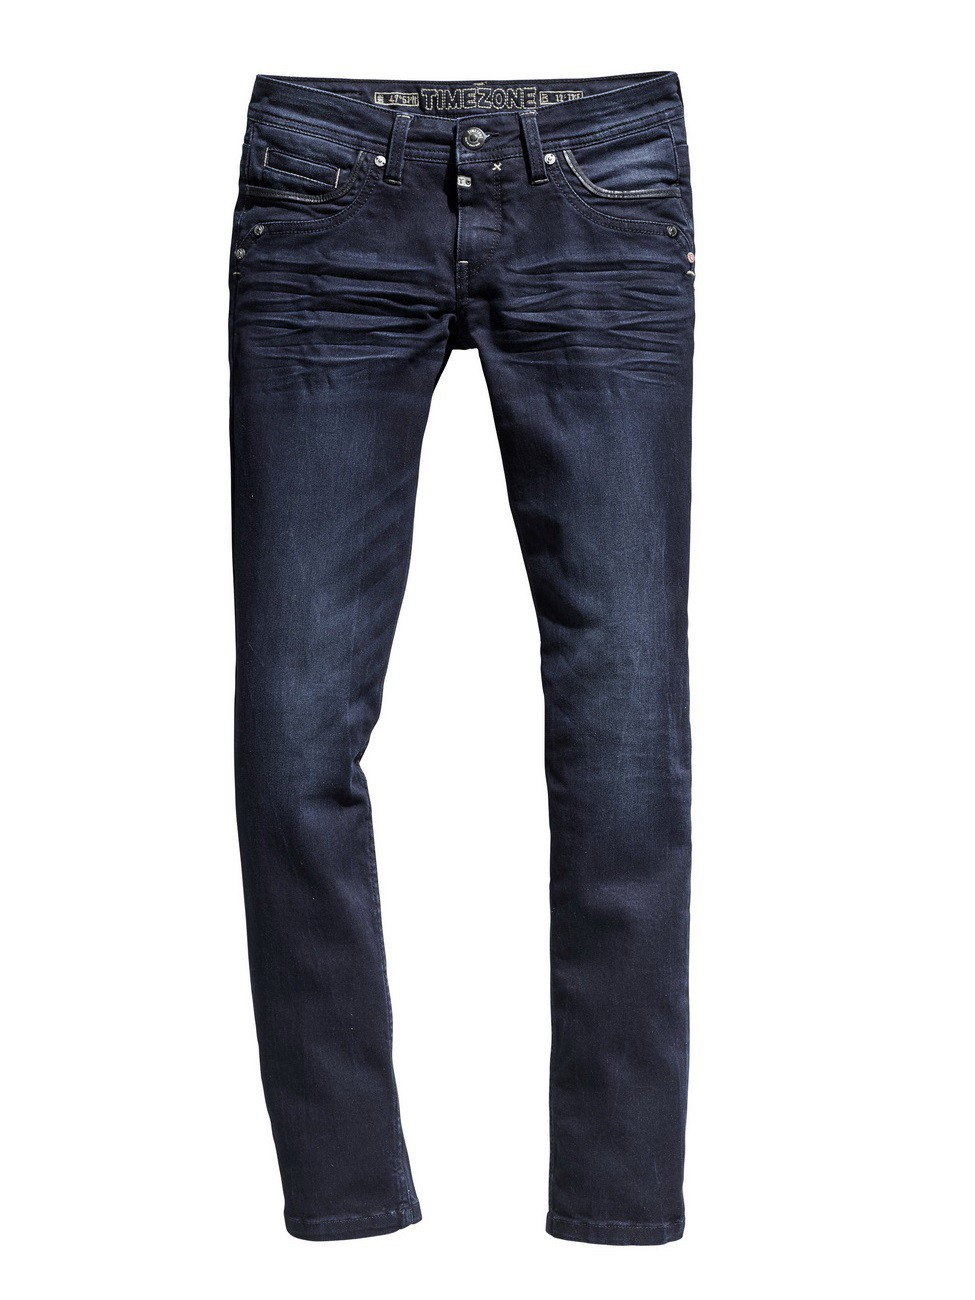 Timezone Damen Jeans TahilaTZ - Slim Fit - Blau - Noble Blue Wash